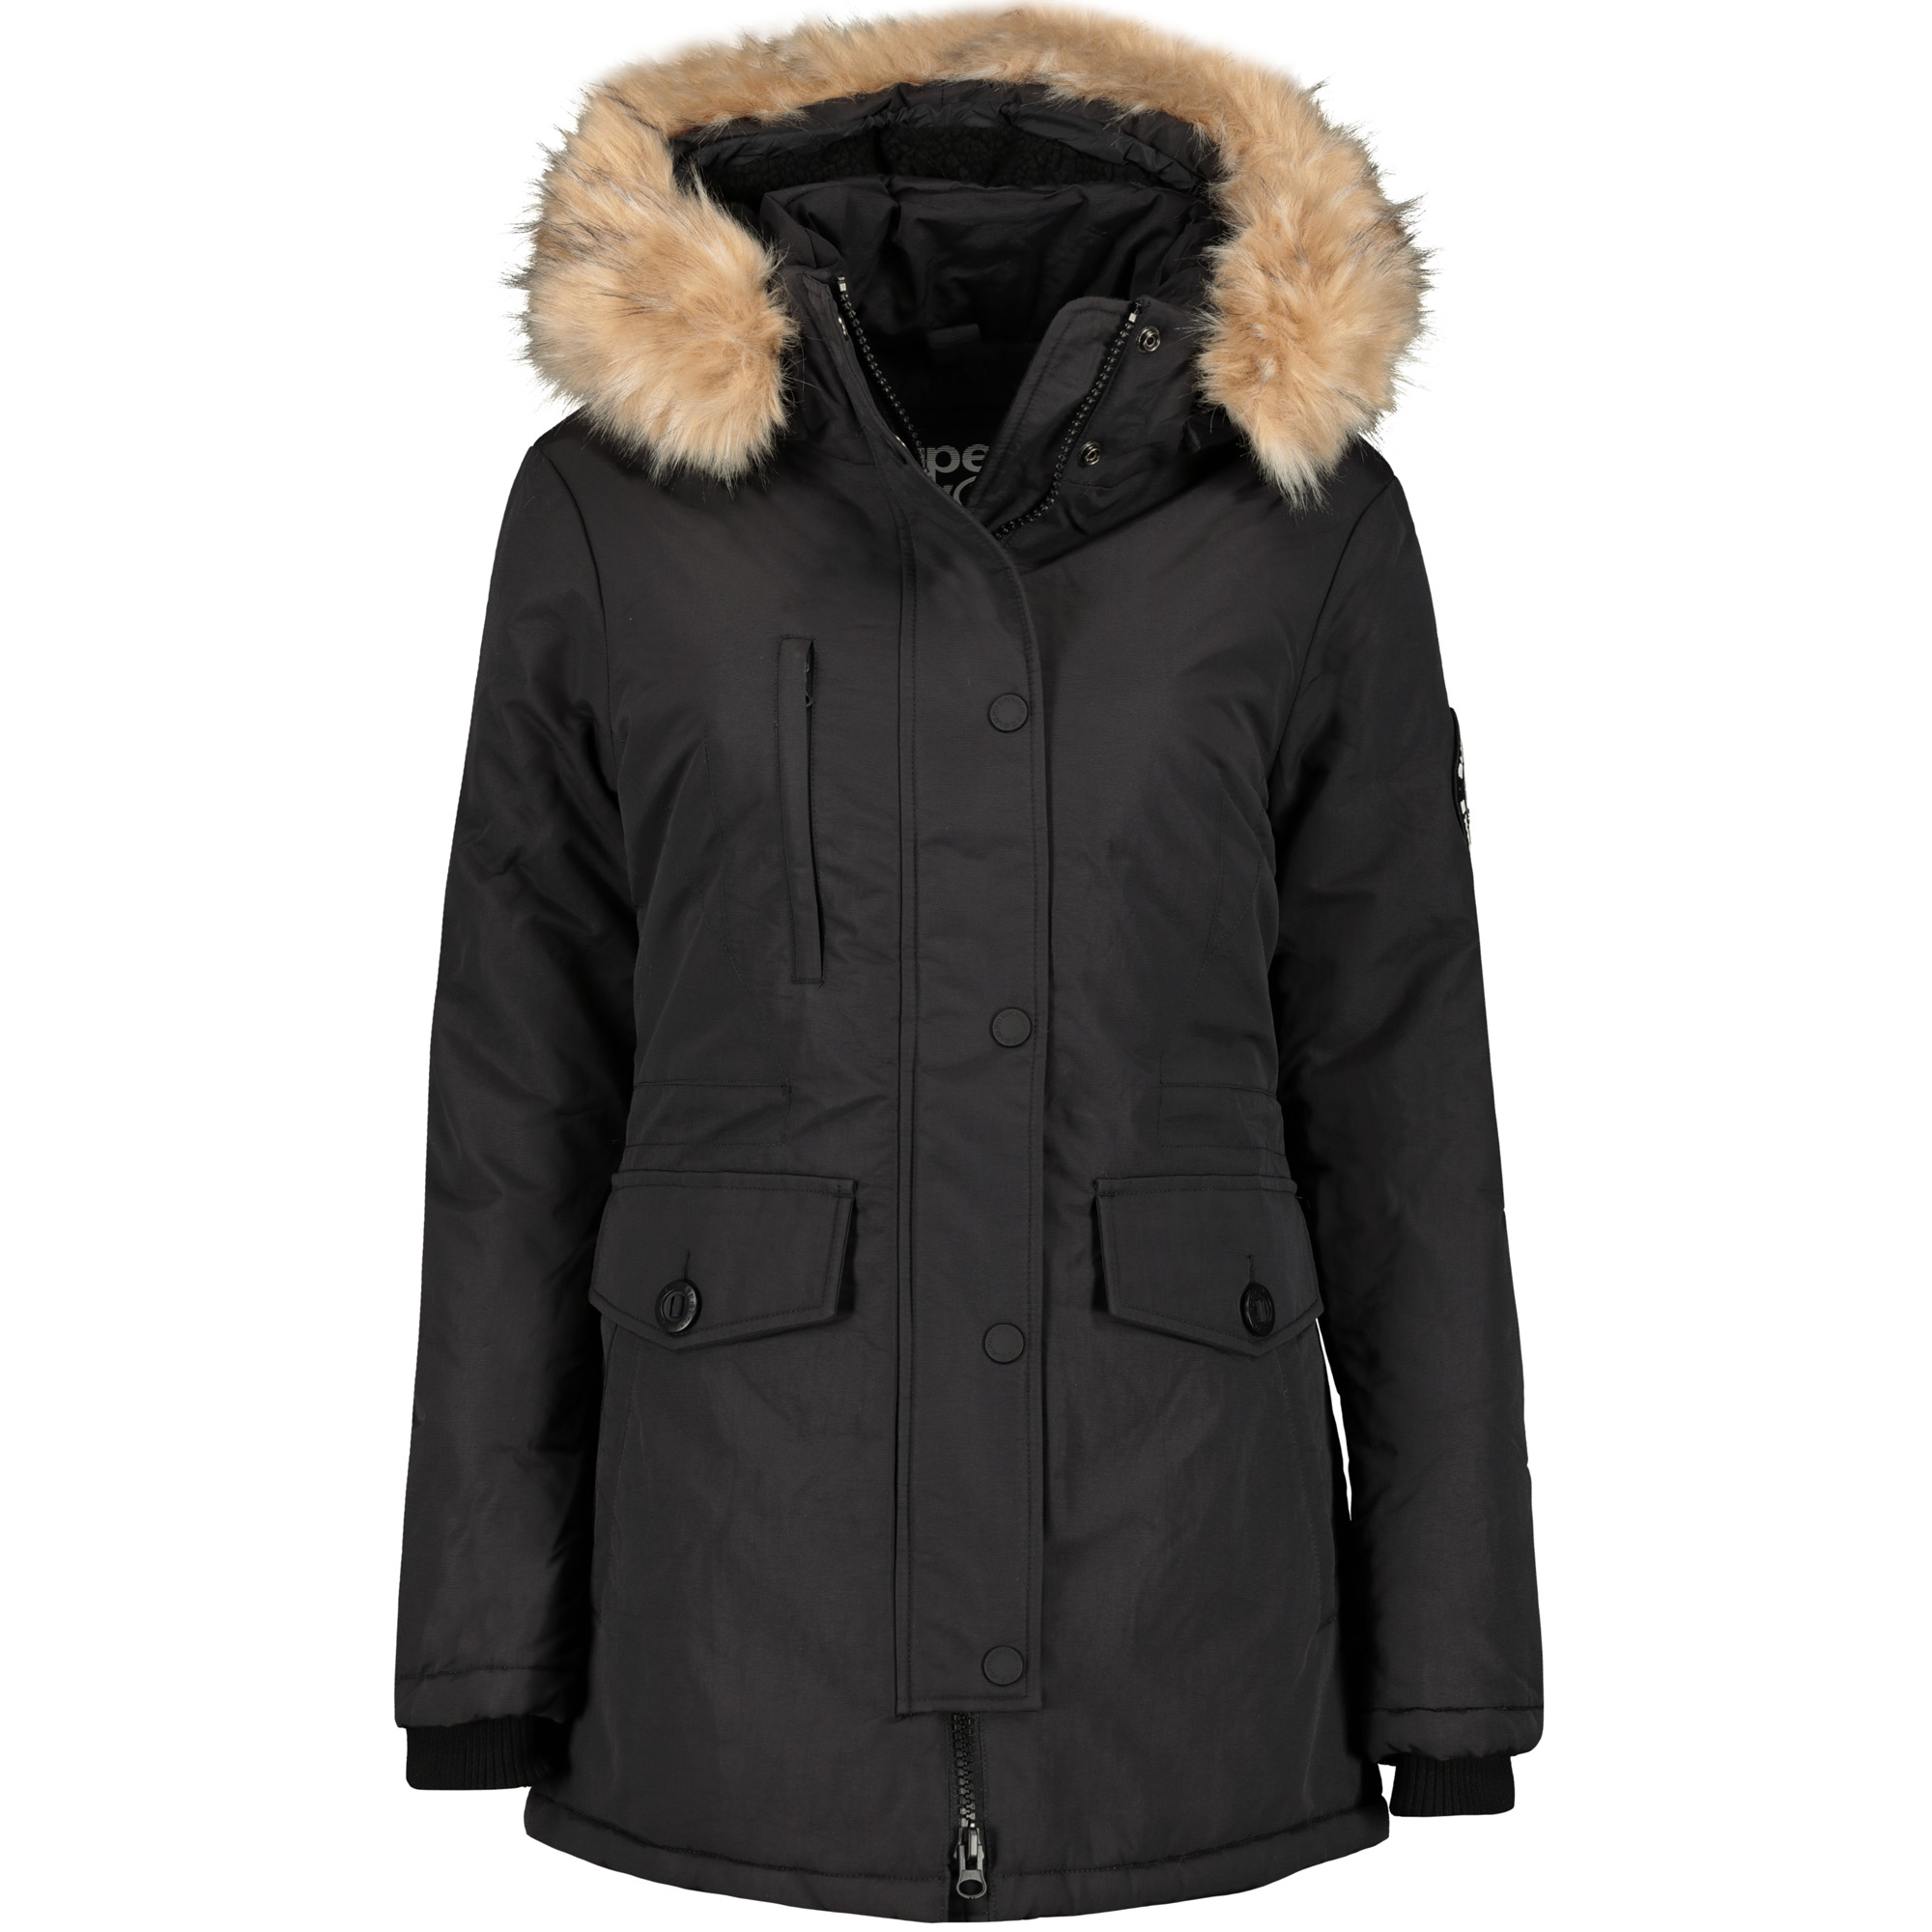 online retailer 4f97b f1e95 Superdry Ashley Everest Parka Damen Winterjacke black Women Jacken & Mäntel  Winterjacke